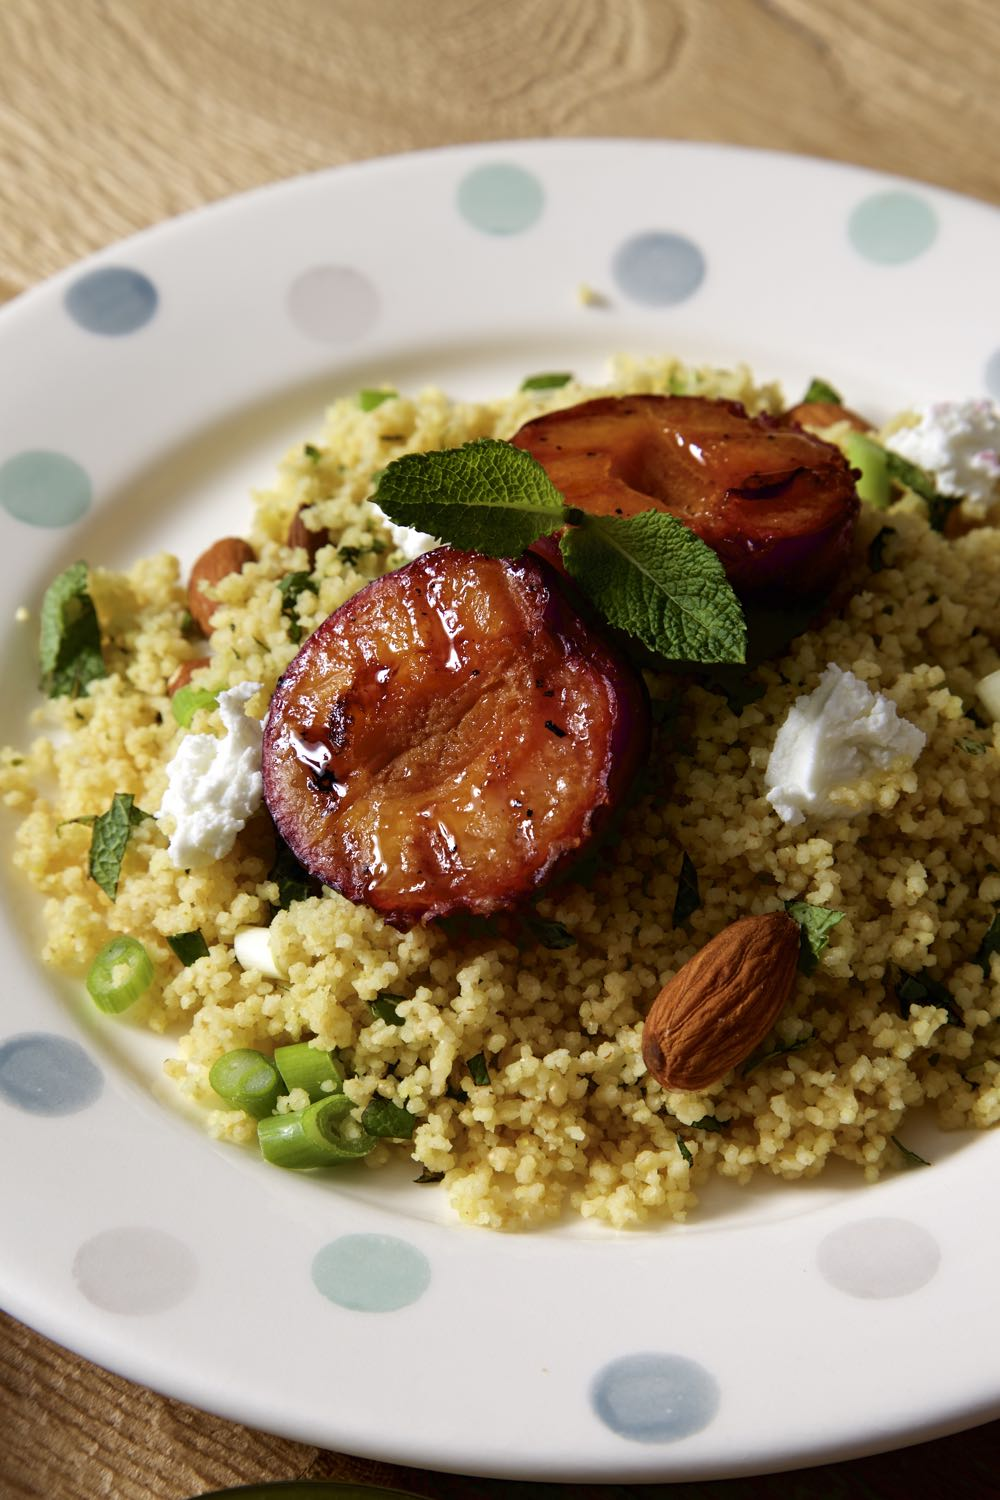 Grilled Plums with Goat's Cheese, Couscous and Mint